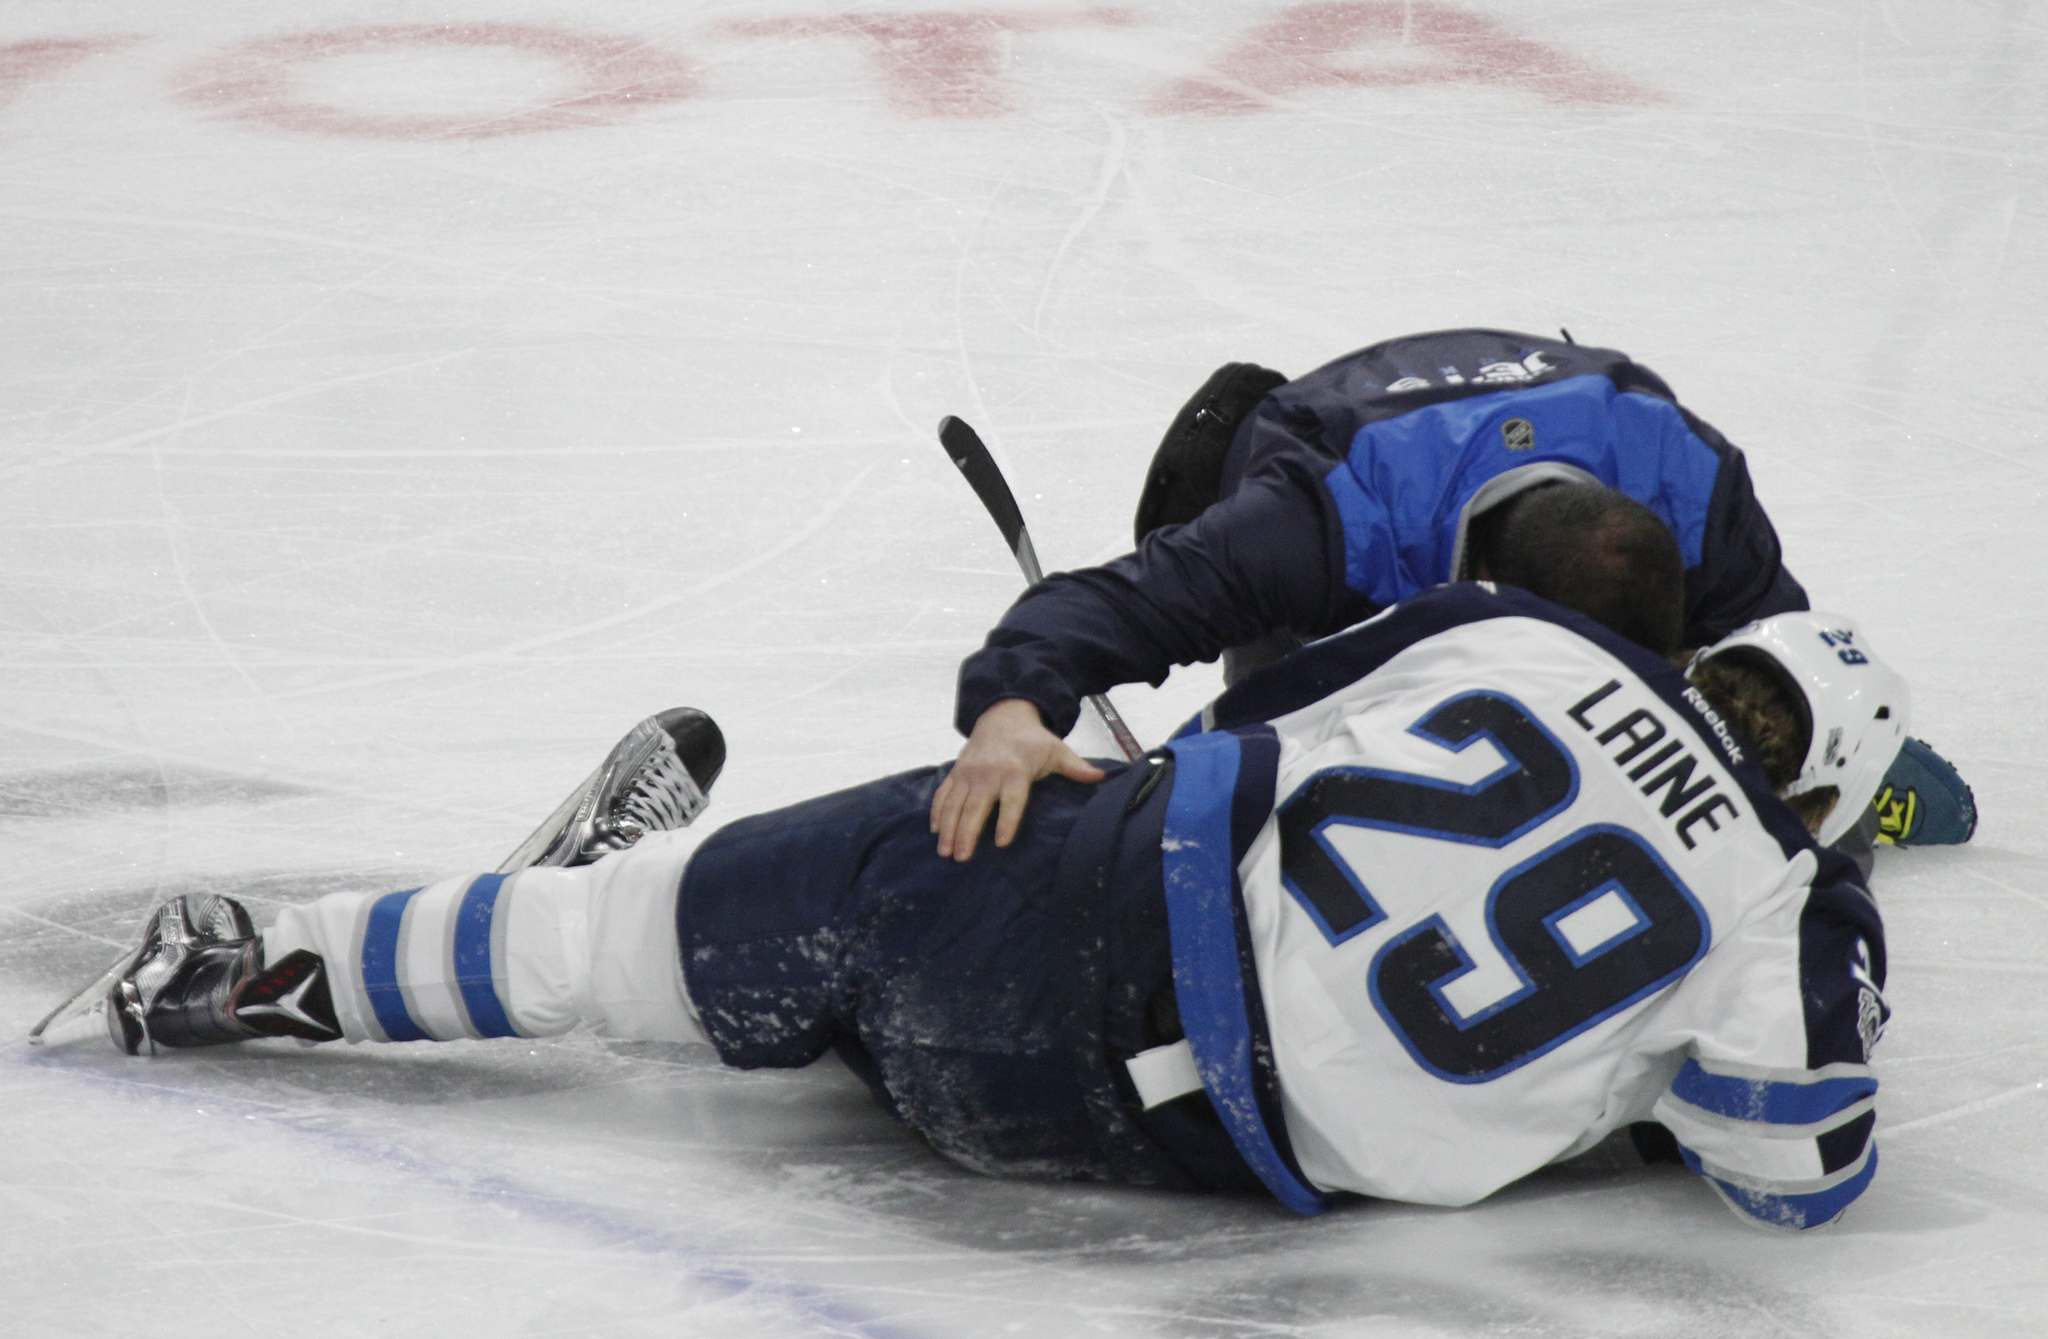 JEFFREY T. BARNES / THE ASSOCIATED PRESS FILES</p><p>Winnipeg forward Patrik Laine is helped by a trainer after getting hit by Buffalo's Jake McCabe during a game on Saturday in Buffalo.</p>